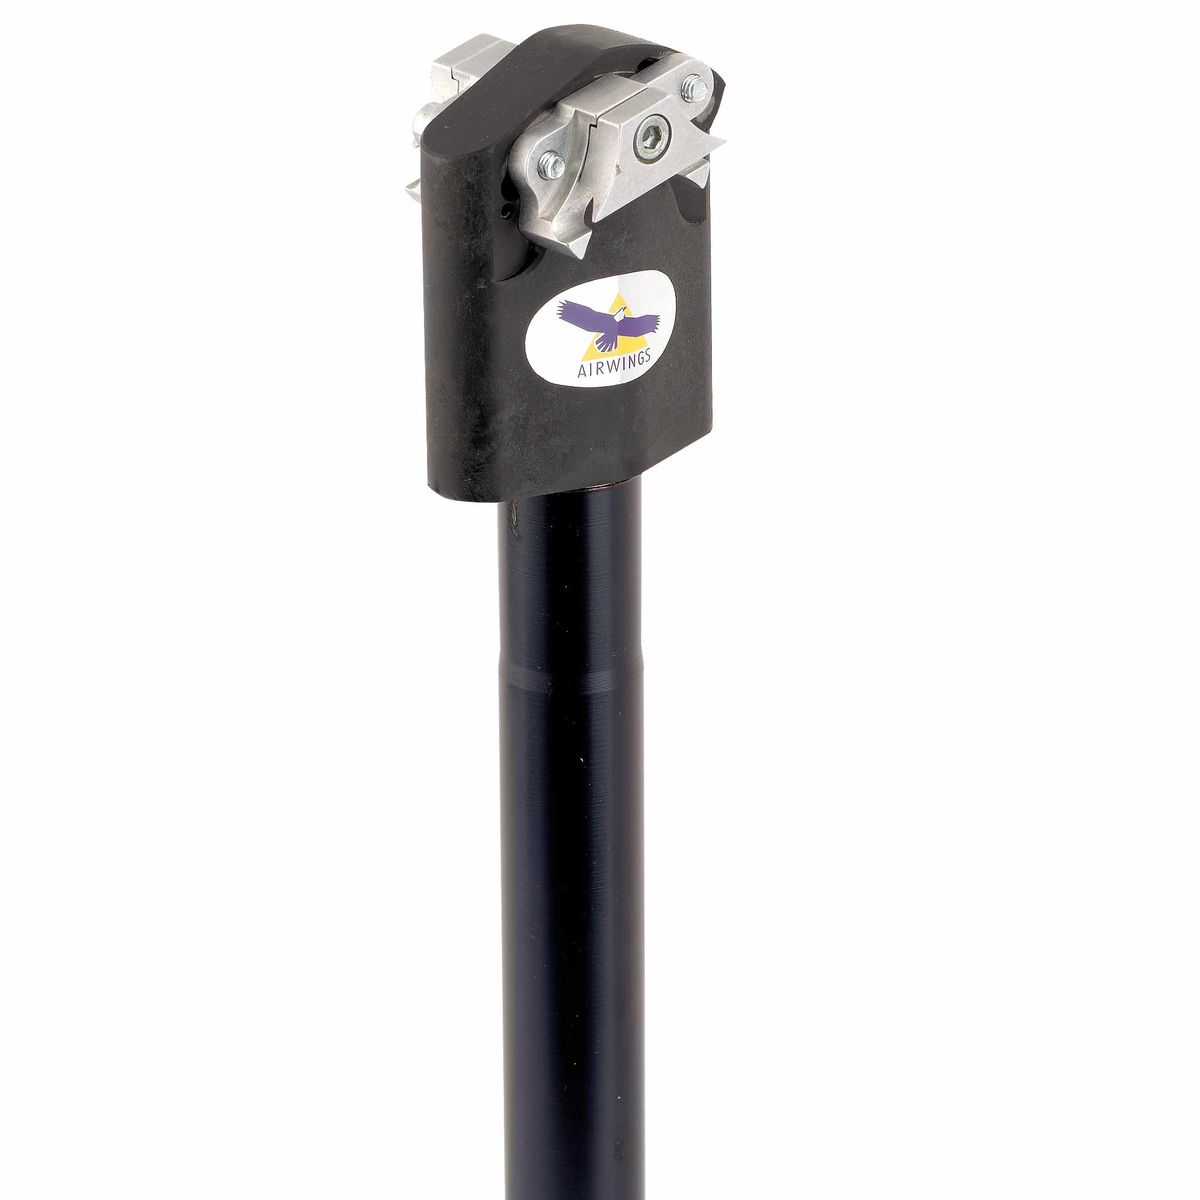 Comfort 1 Plus suspension seat post